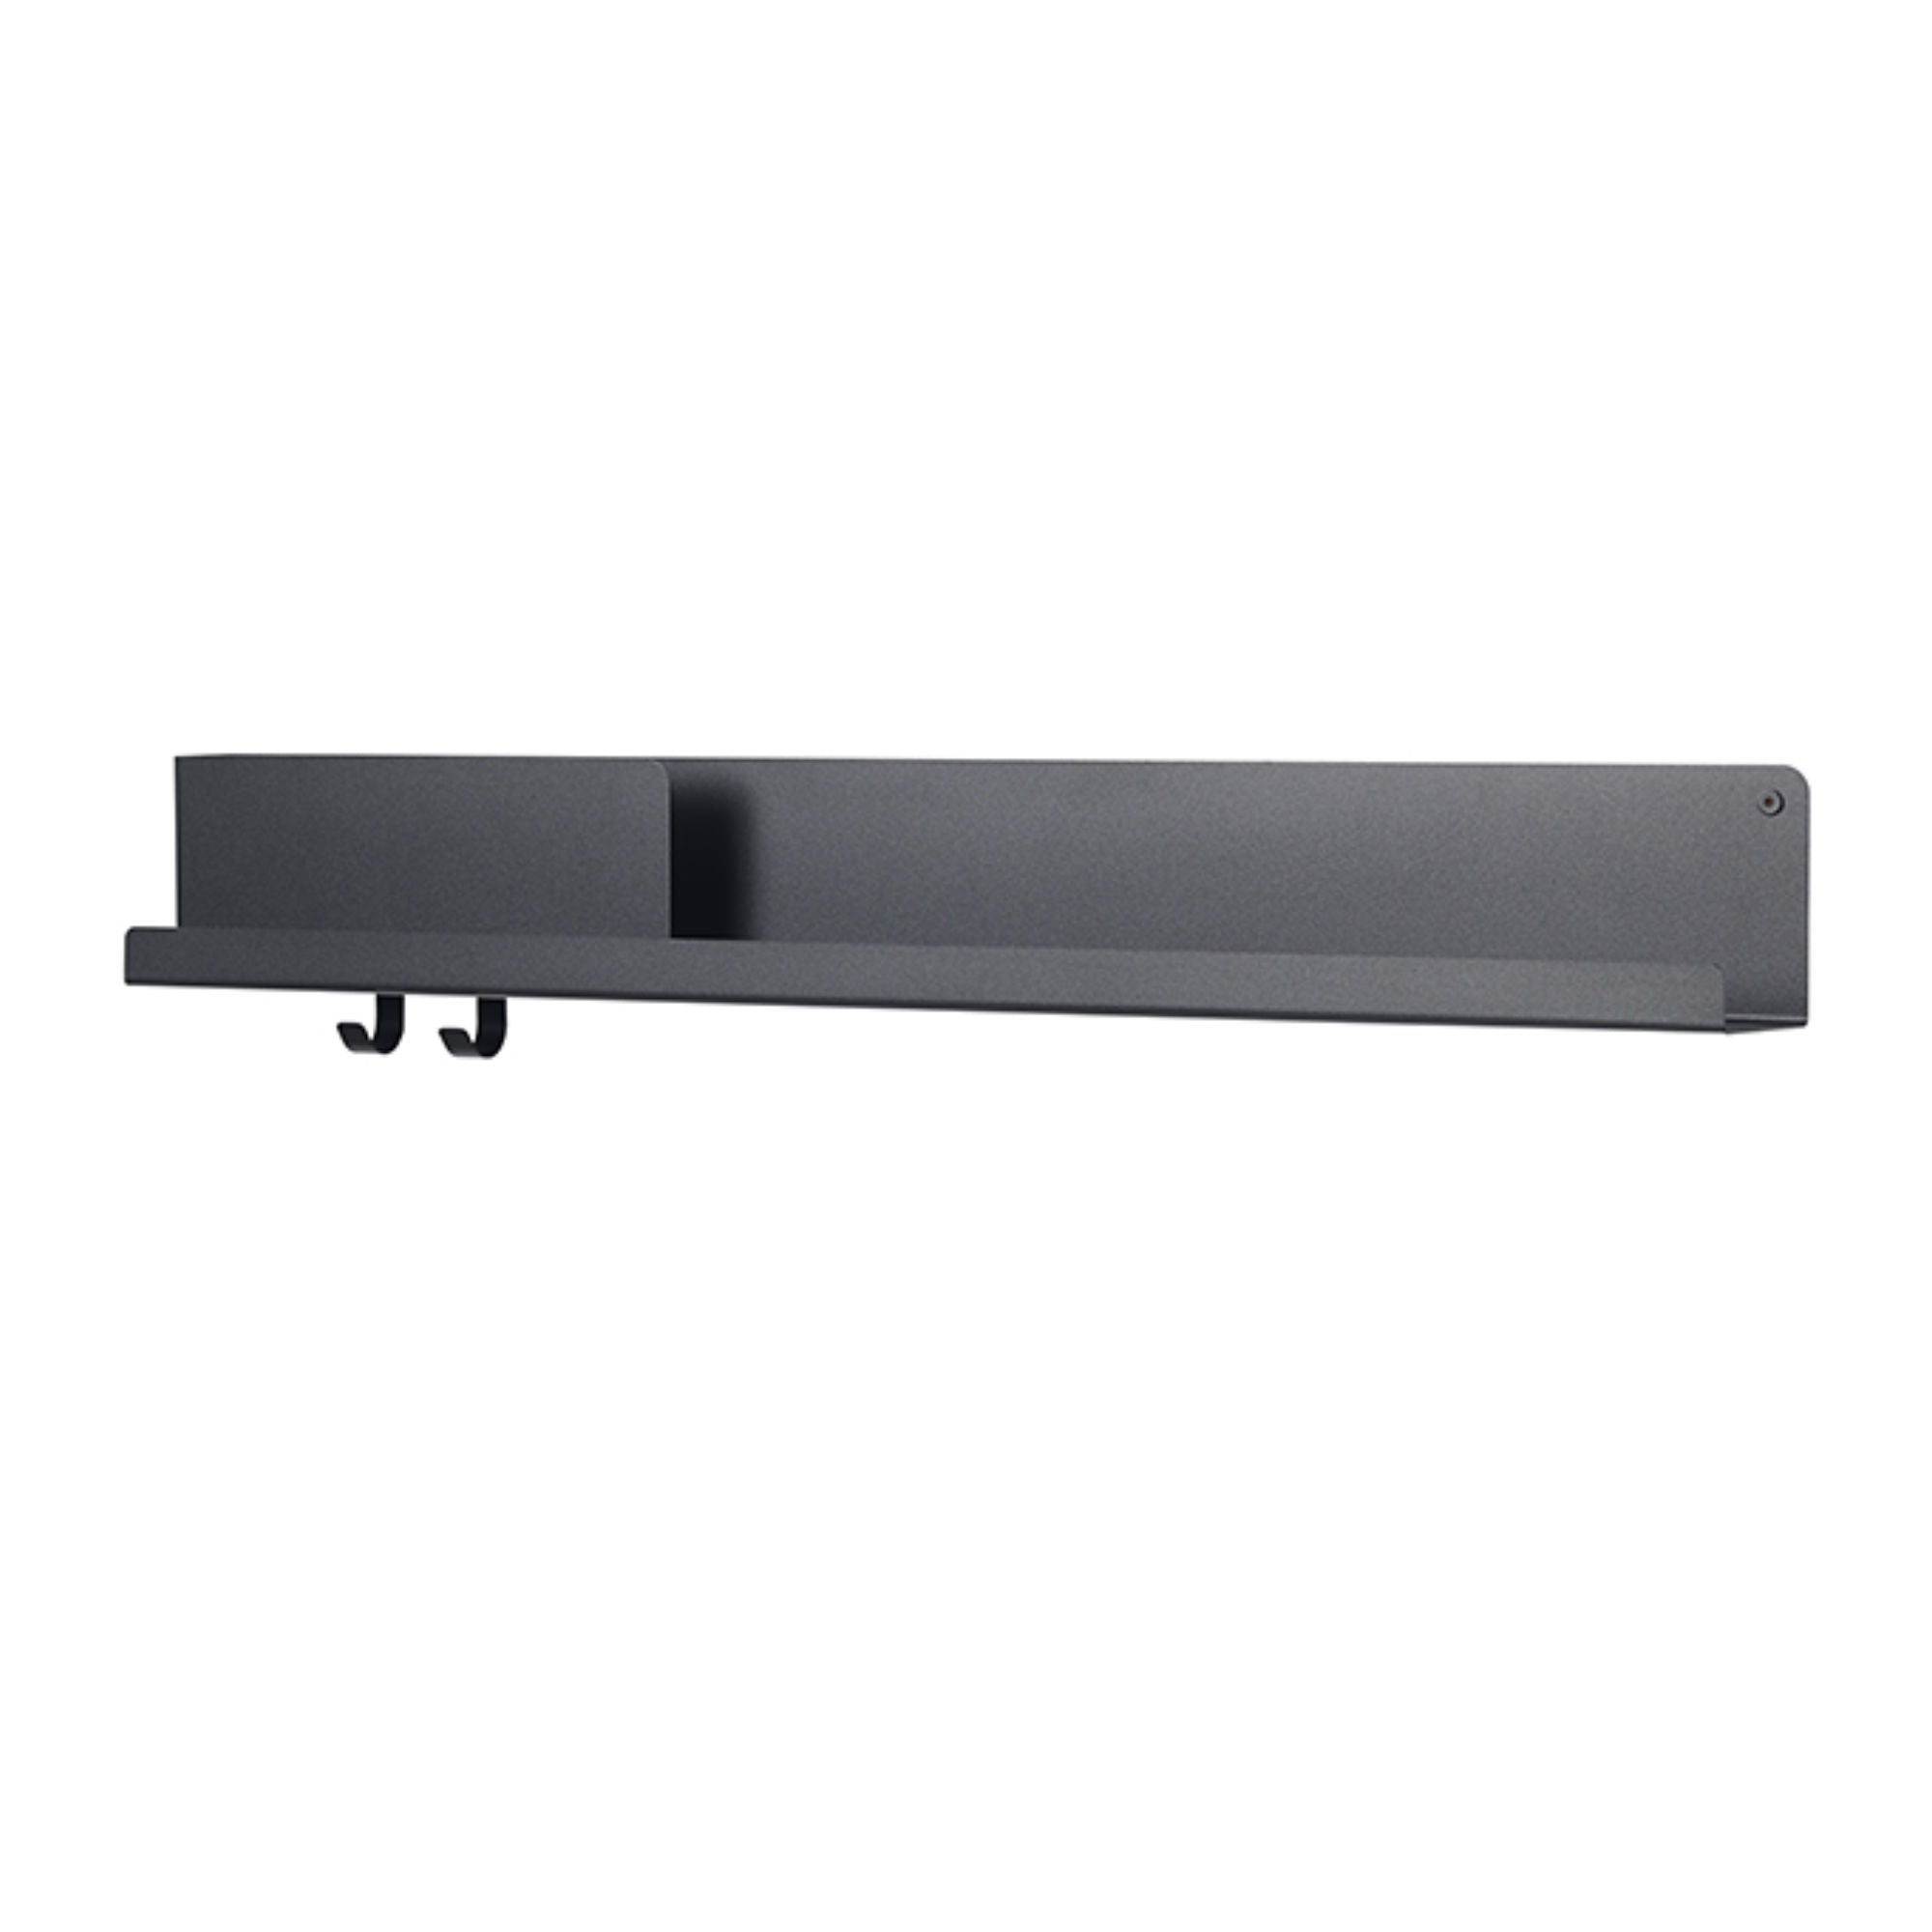 Muuto Folded Shelves 96x13cm , Black